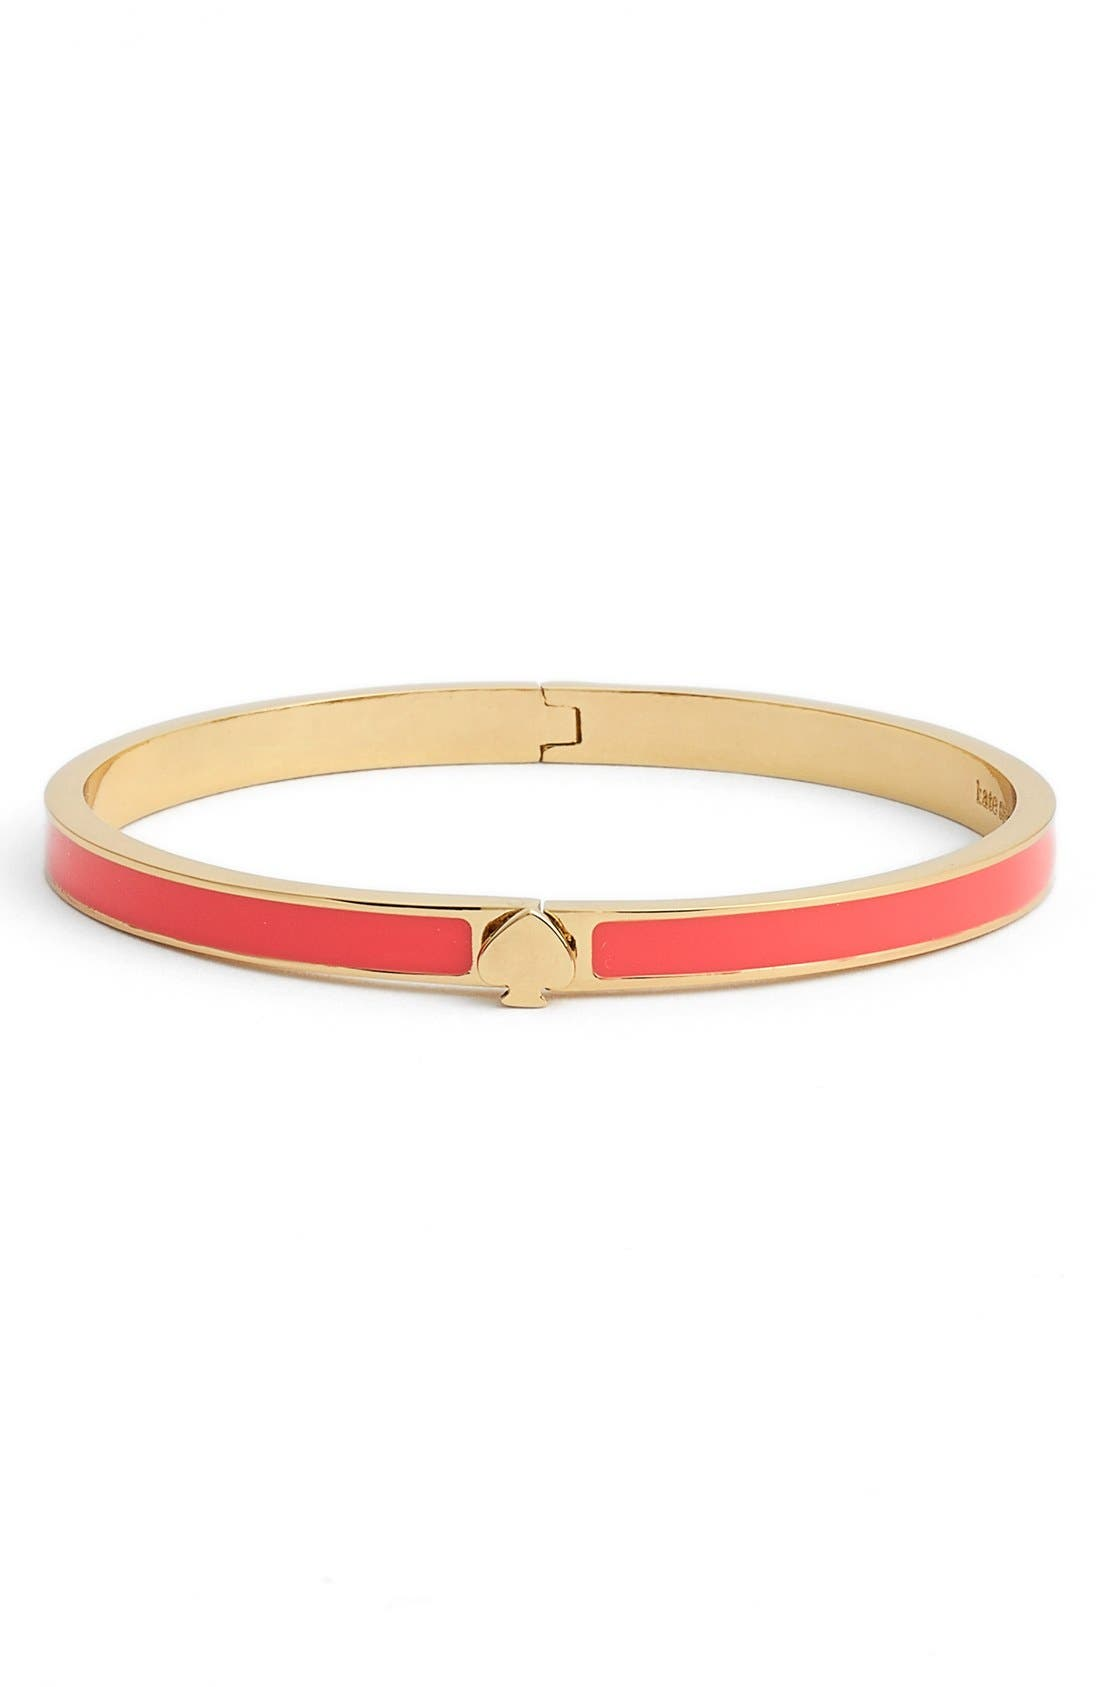 Alternate Image 1 Selected - kate spade new york 'spade' thin hinged bangle